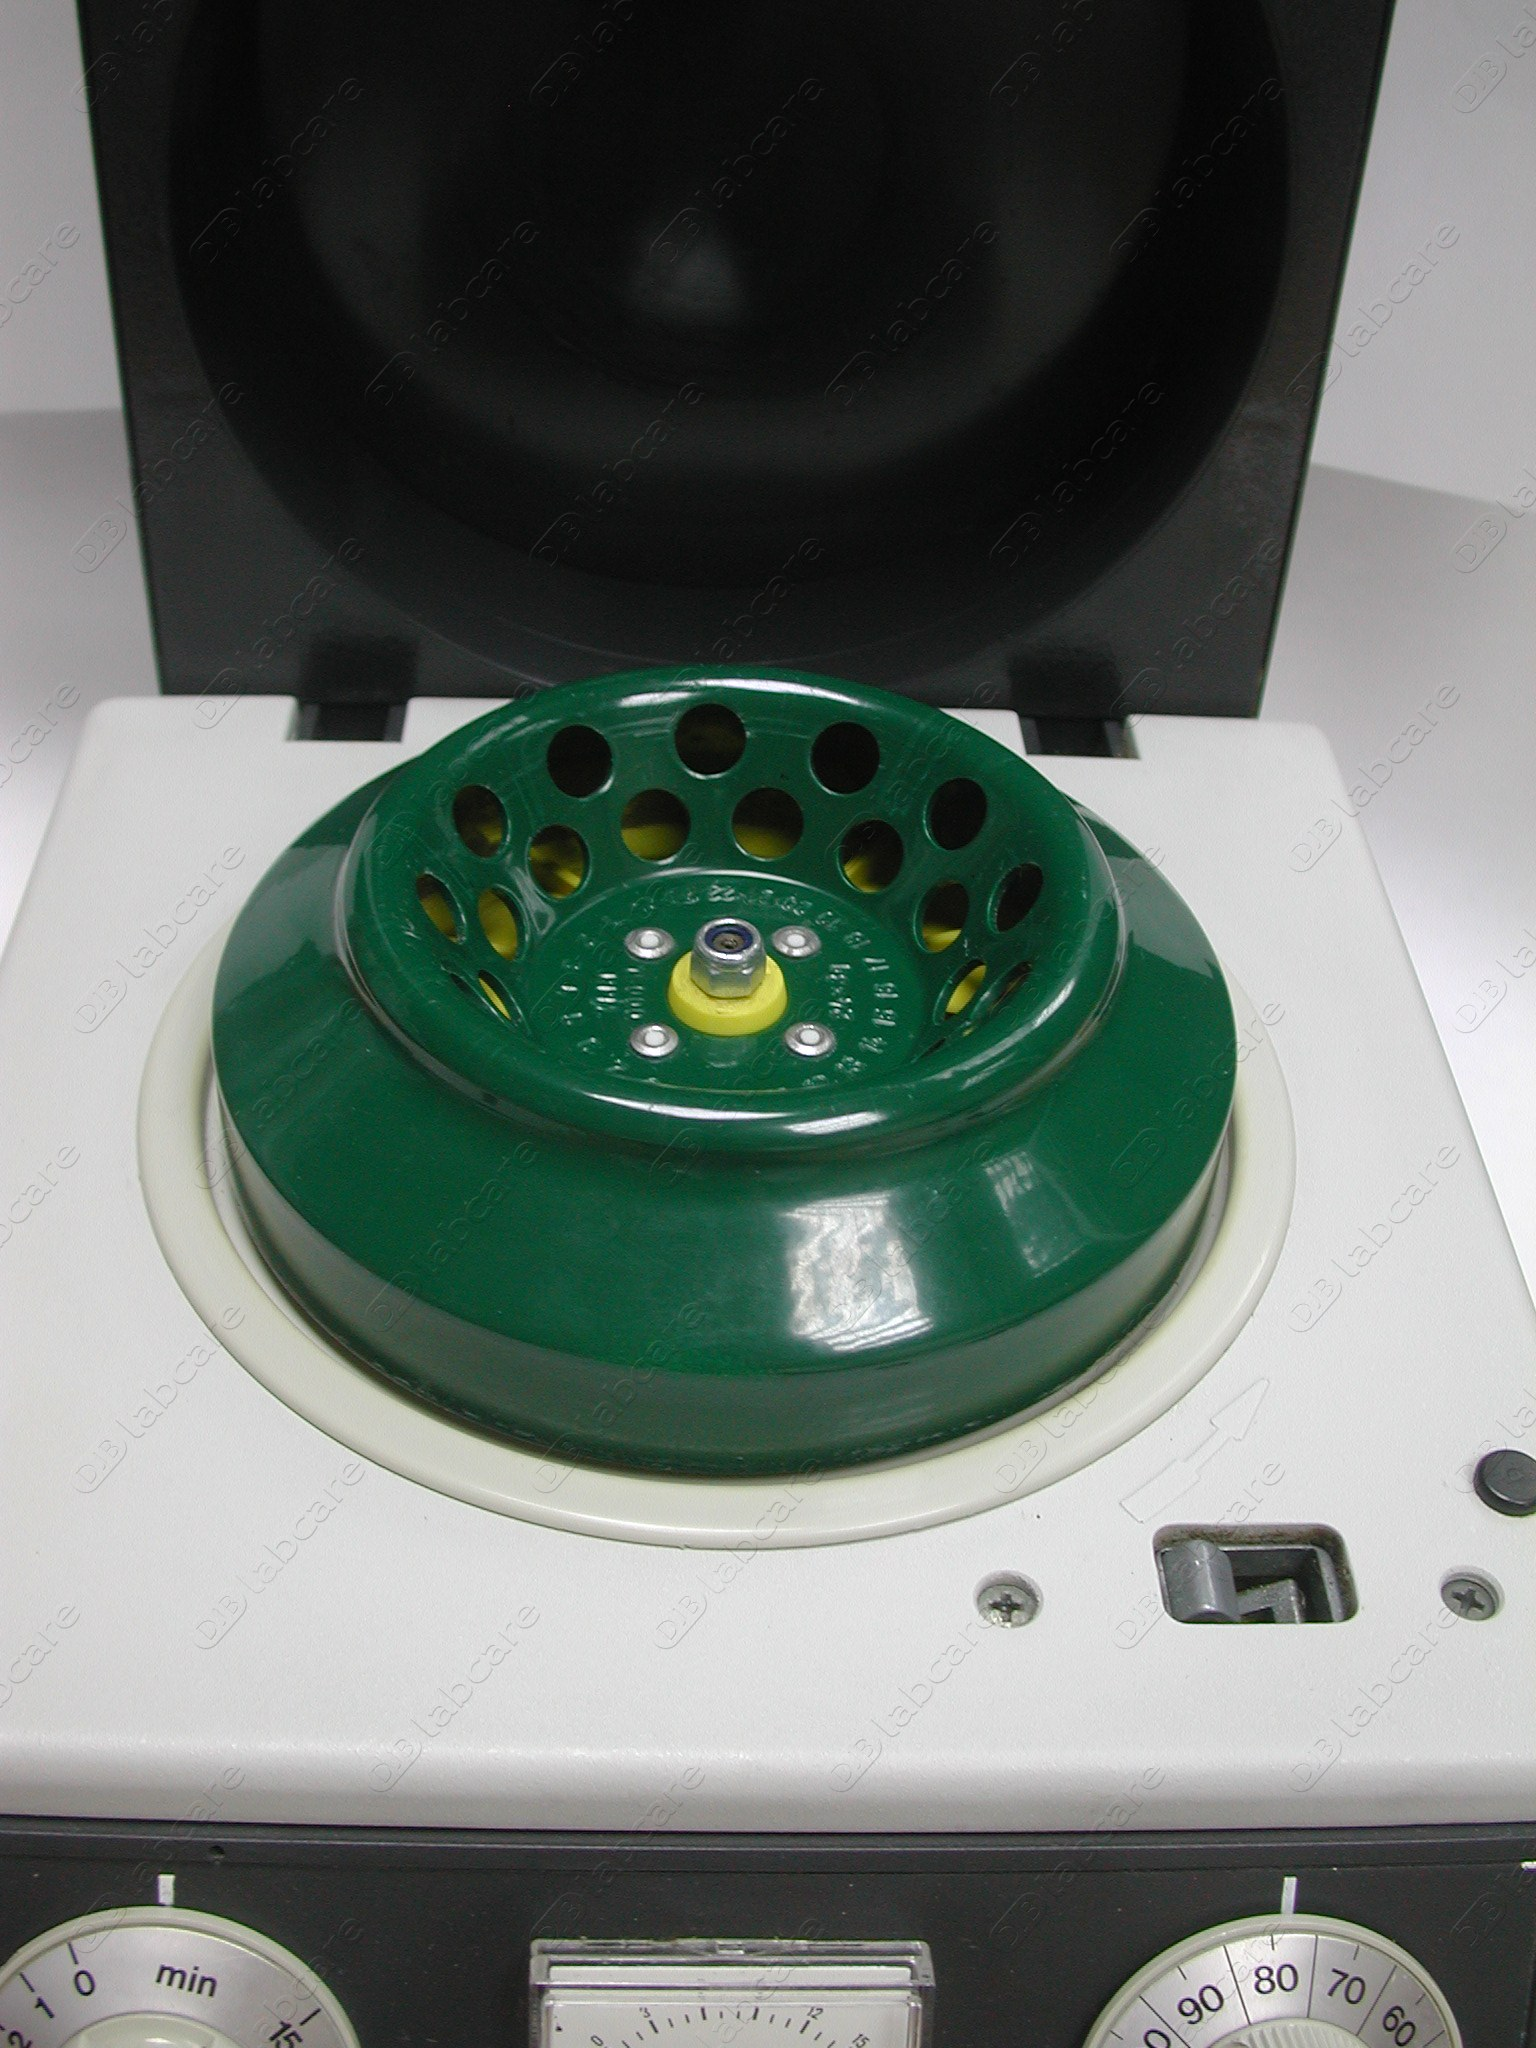 Sorvall Micro Spin 24s Microcentrifuges Centrifuges